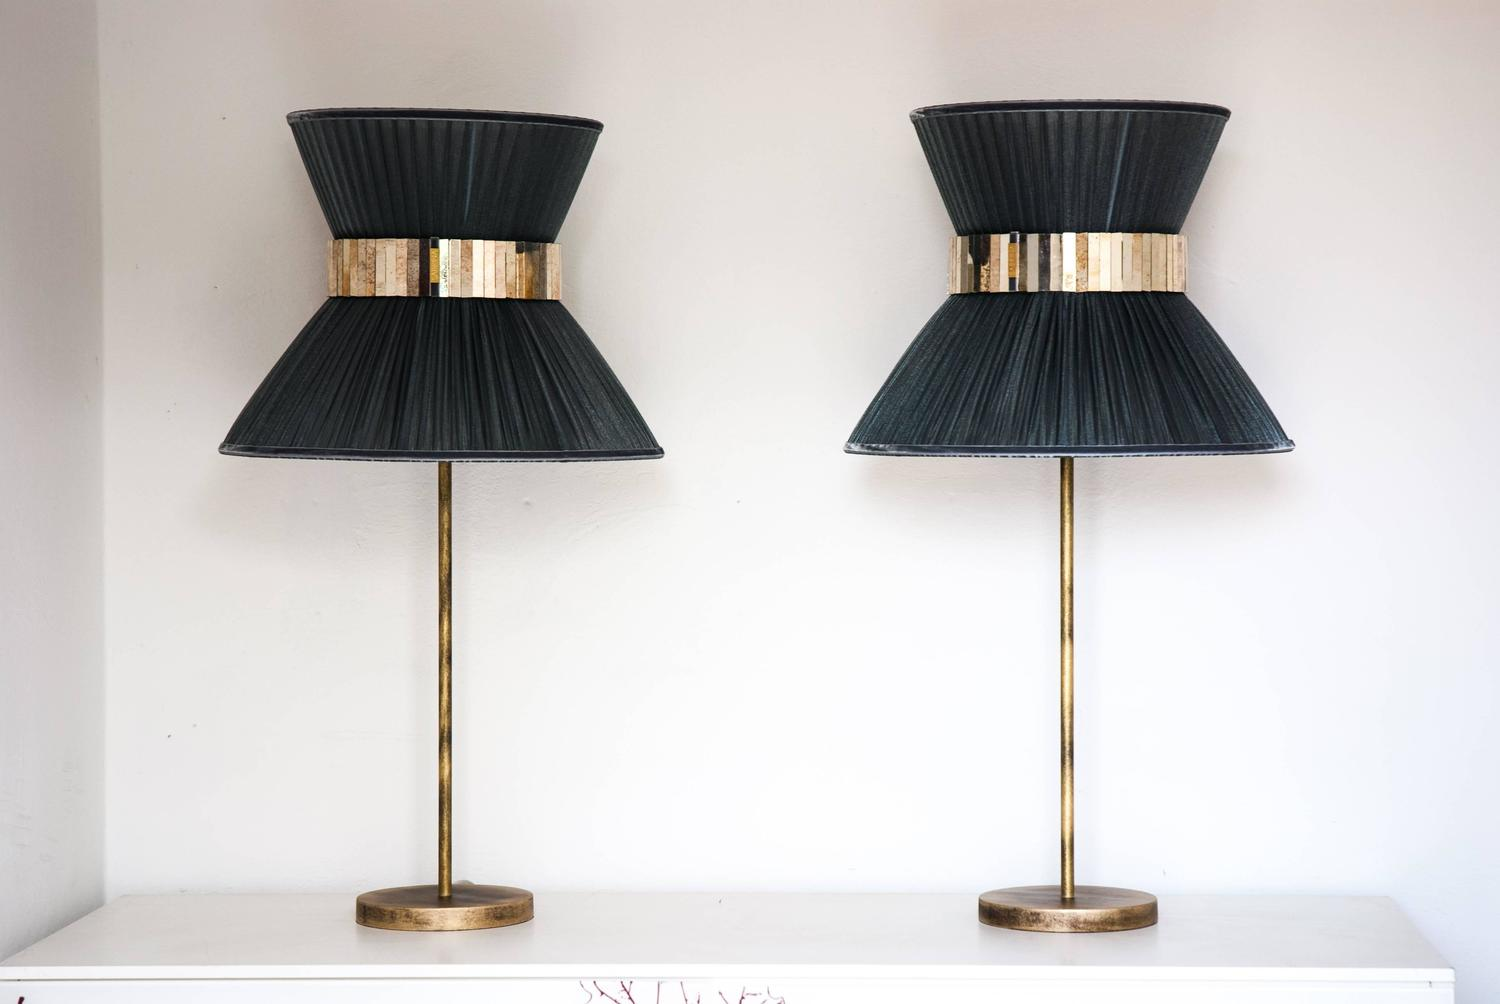 tiffany console table lamp lightings silk shade brass base silver. Black Bedroom Furniture Sets. Home Design Ideas